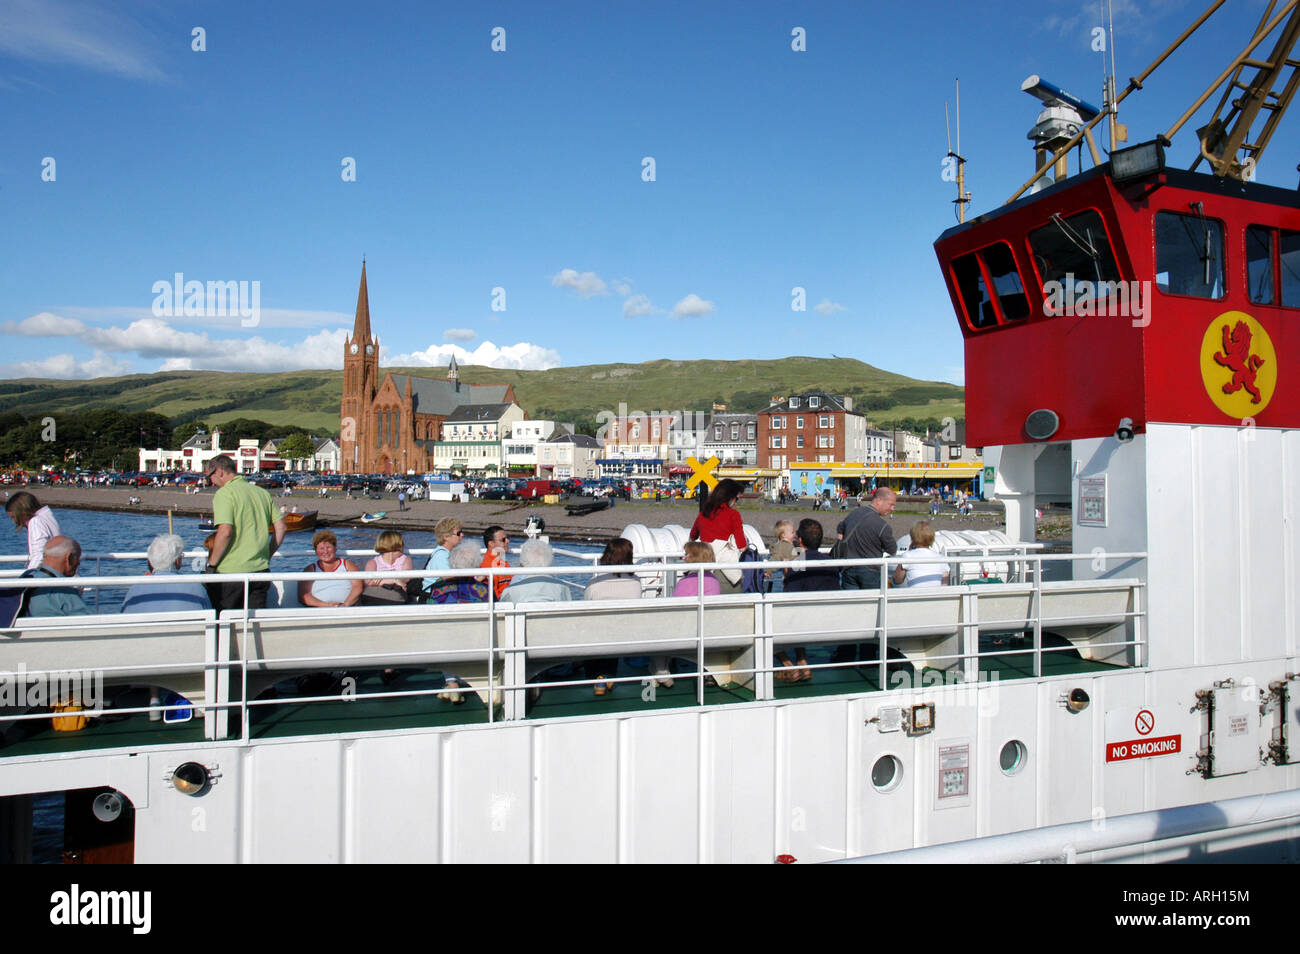 Largs to Isle of Cumbrae Cal Mac ferry with Largs in background - Stock Image